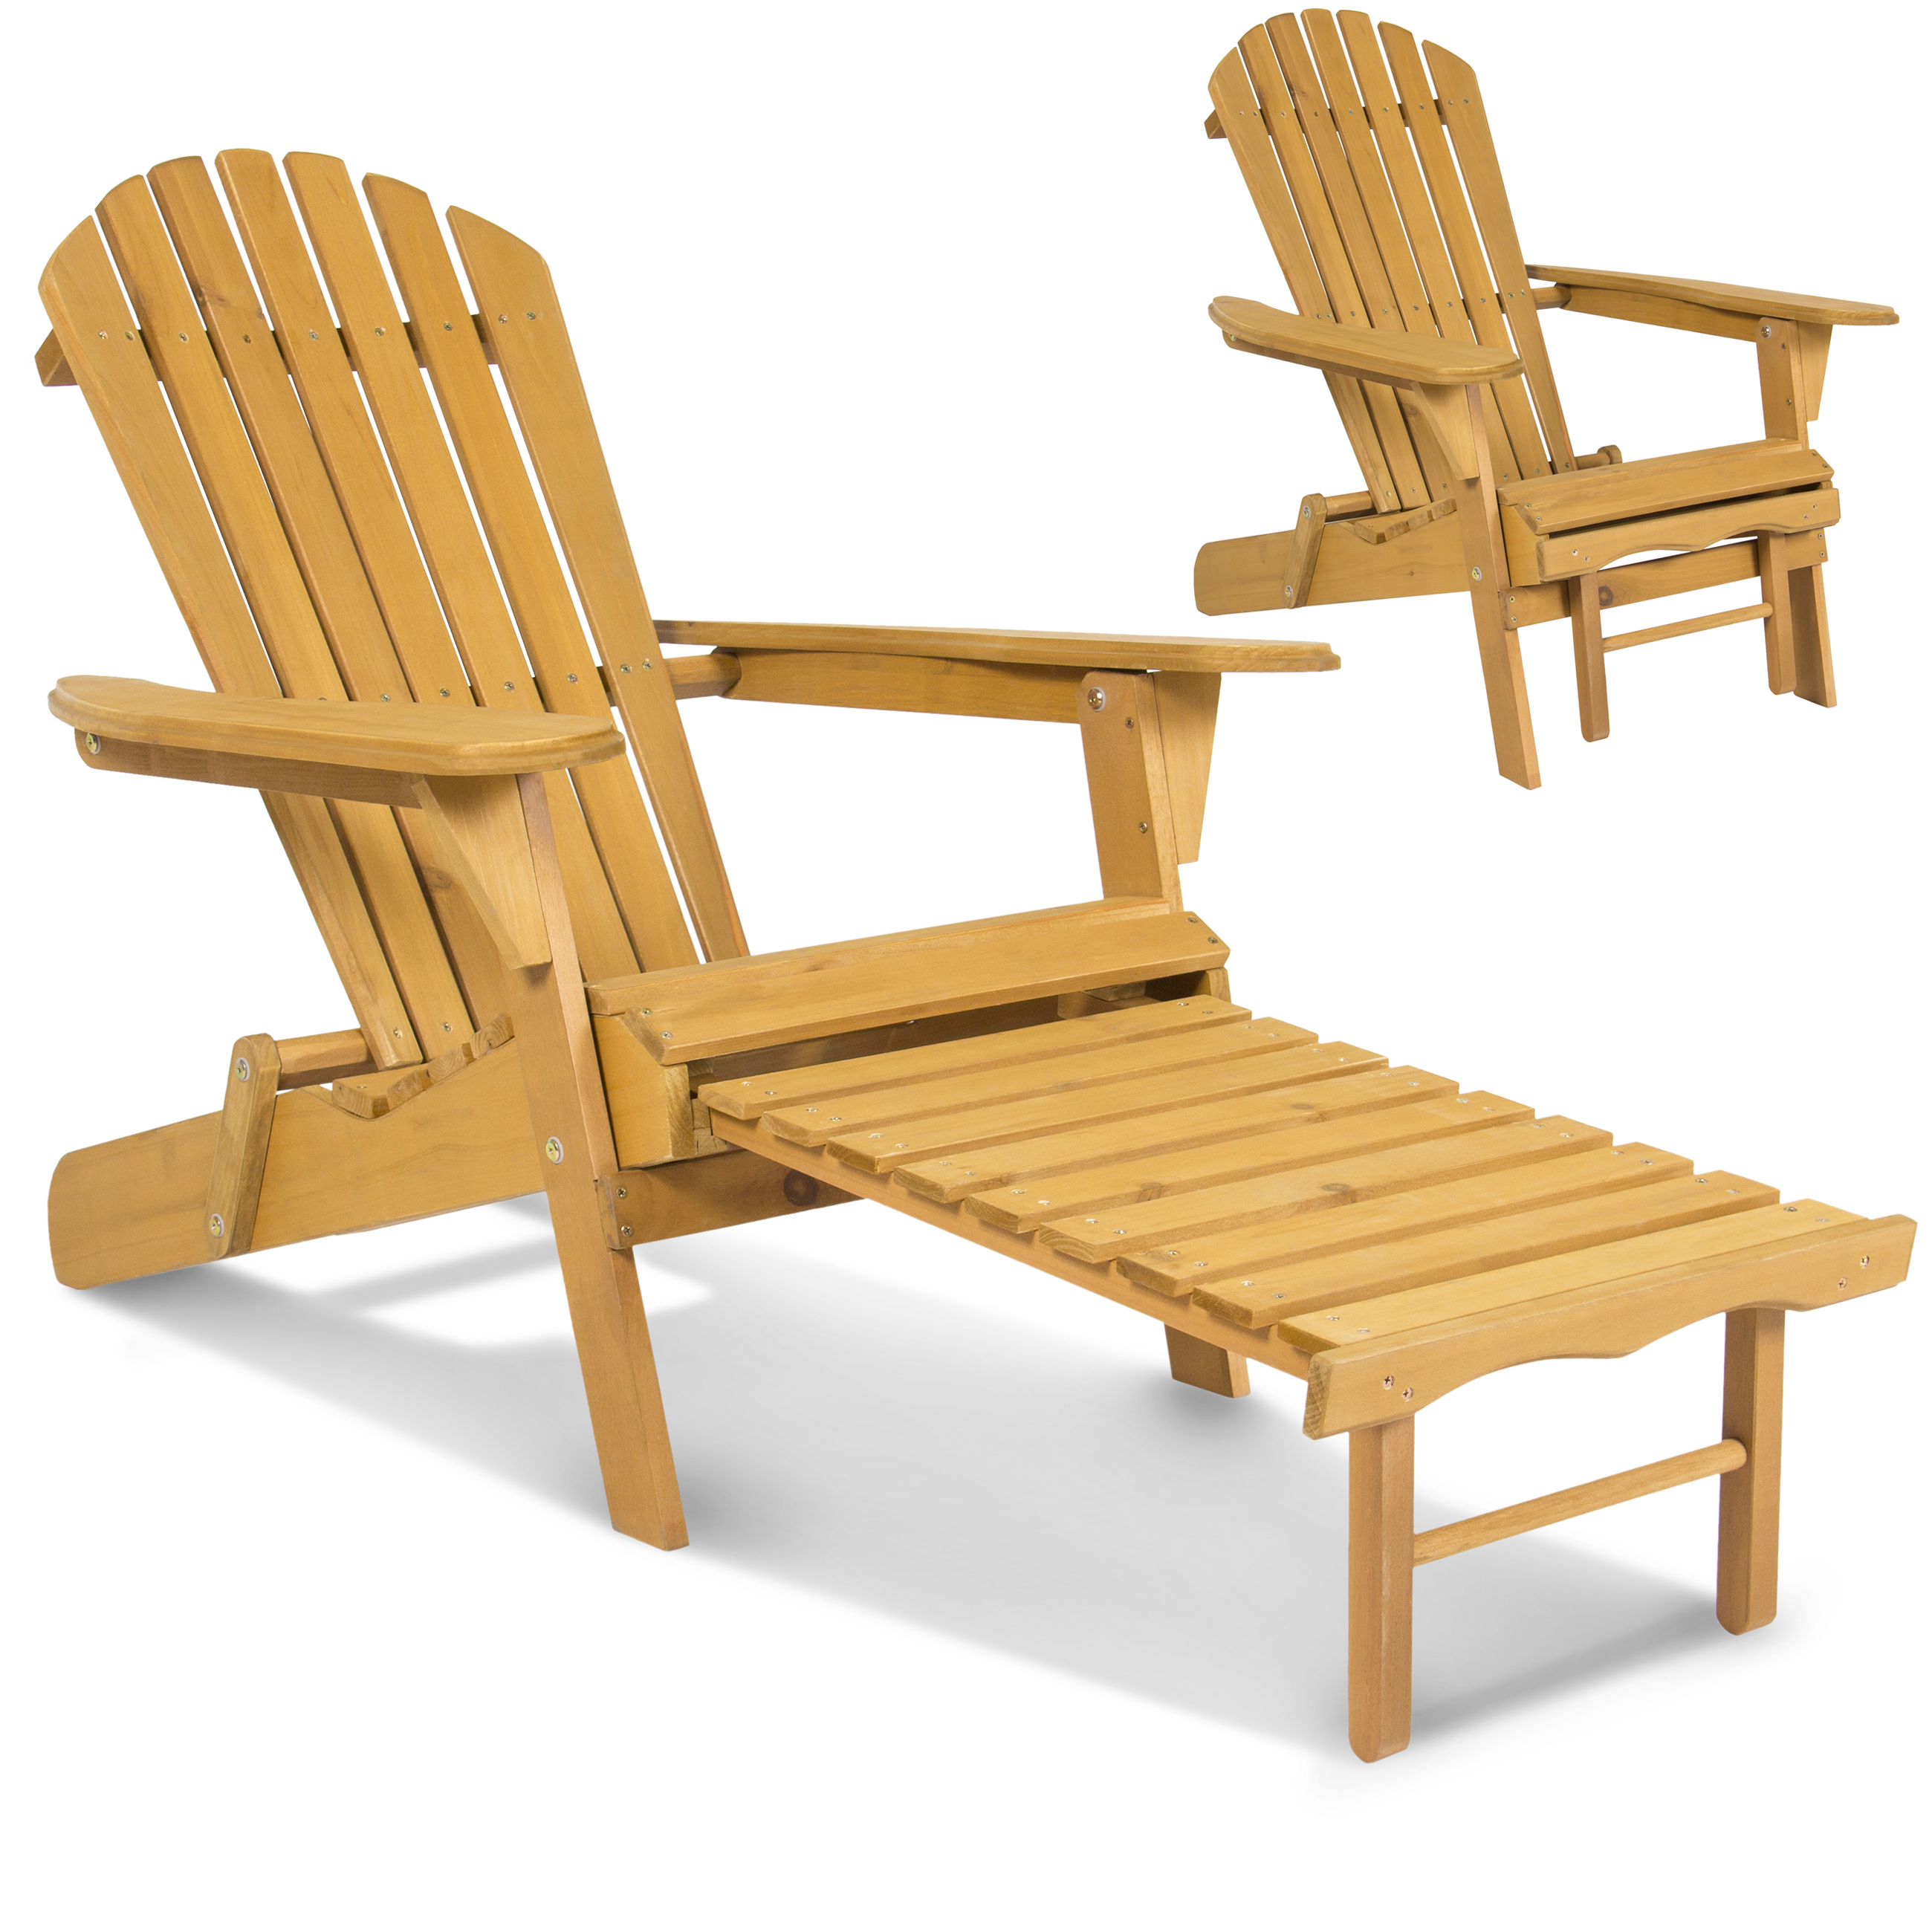 best choice products outdoor wood adirondack chair foldable w pull rh walmart com costco outdoor furniture adirondack chairs Adirondack Chair Plans & Templates